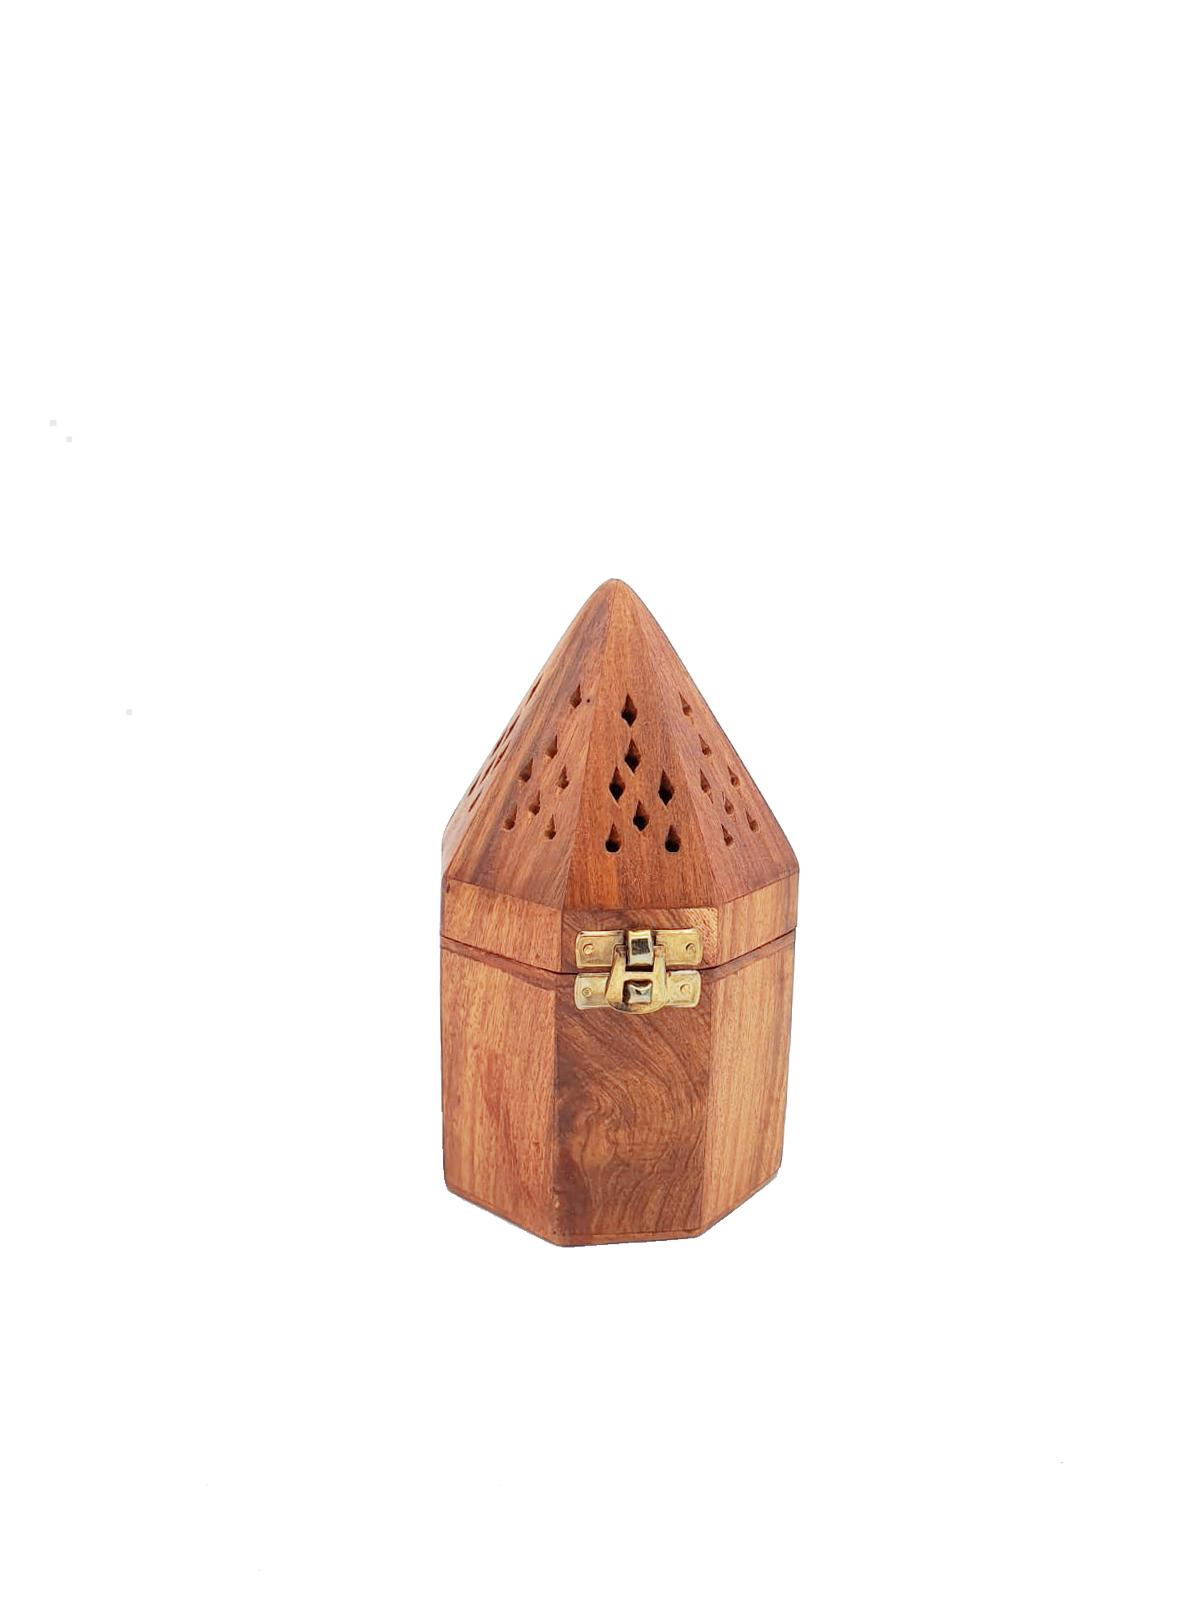 Buy Wooden Cone Incense Burner - Large